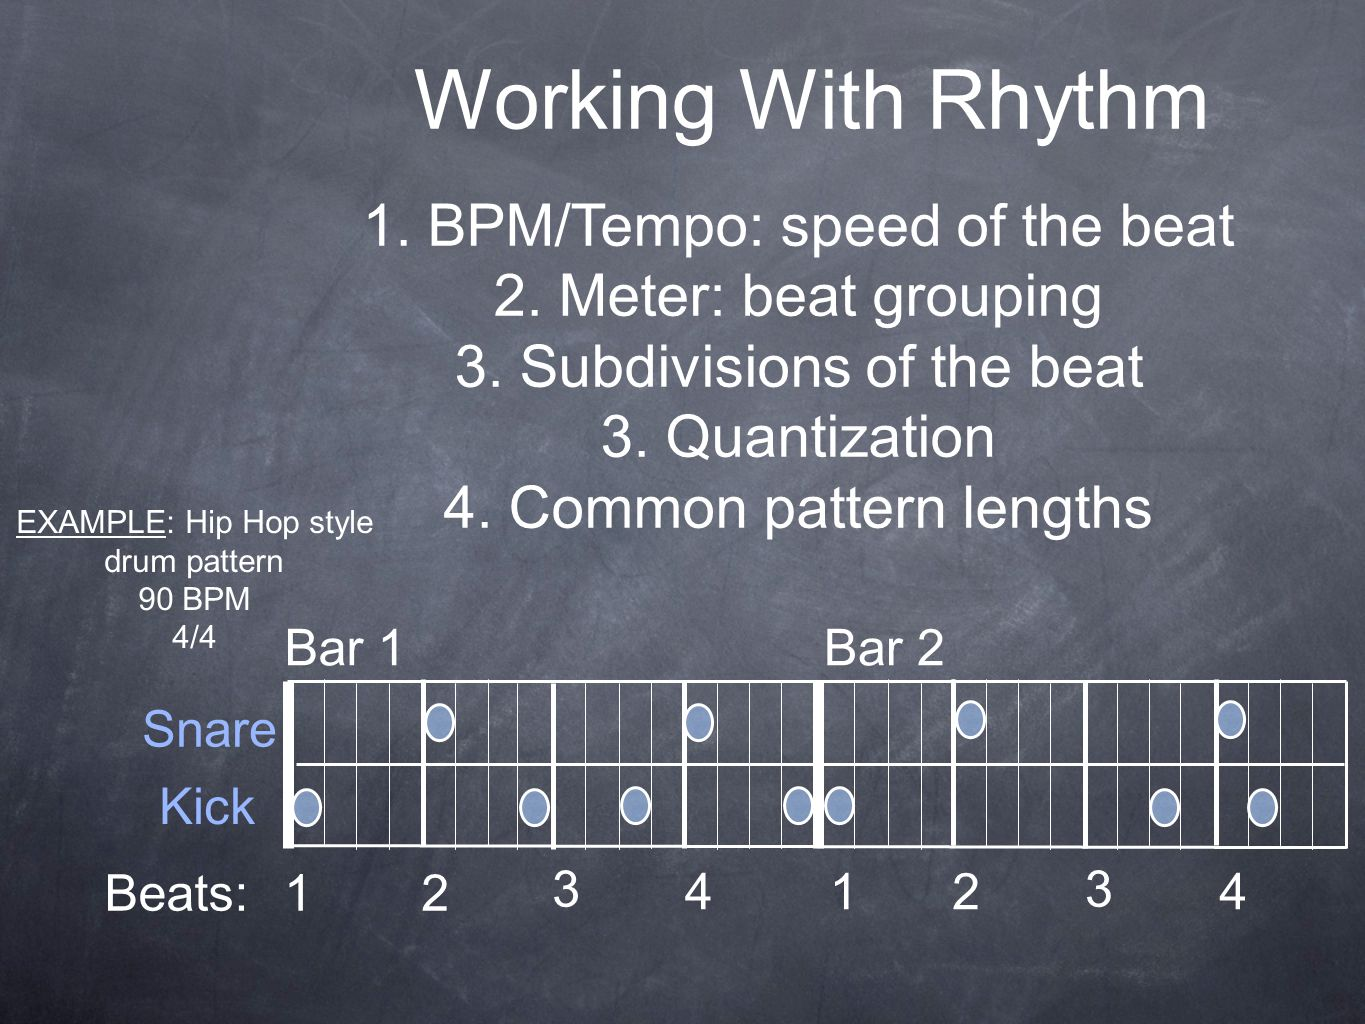 Working With Rhythm 1. BPM/Tempo: speed of the beat 2. Meter: beat grouping 3. Subdivisions of the beat 3. Quantization 4. Common pattern lengths EXAM